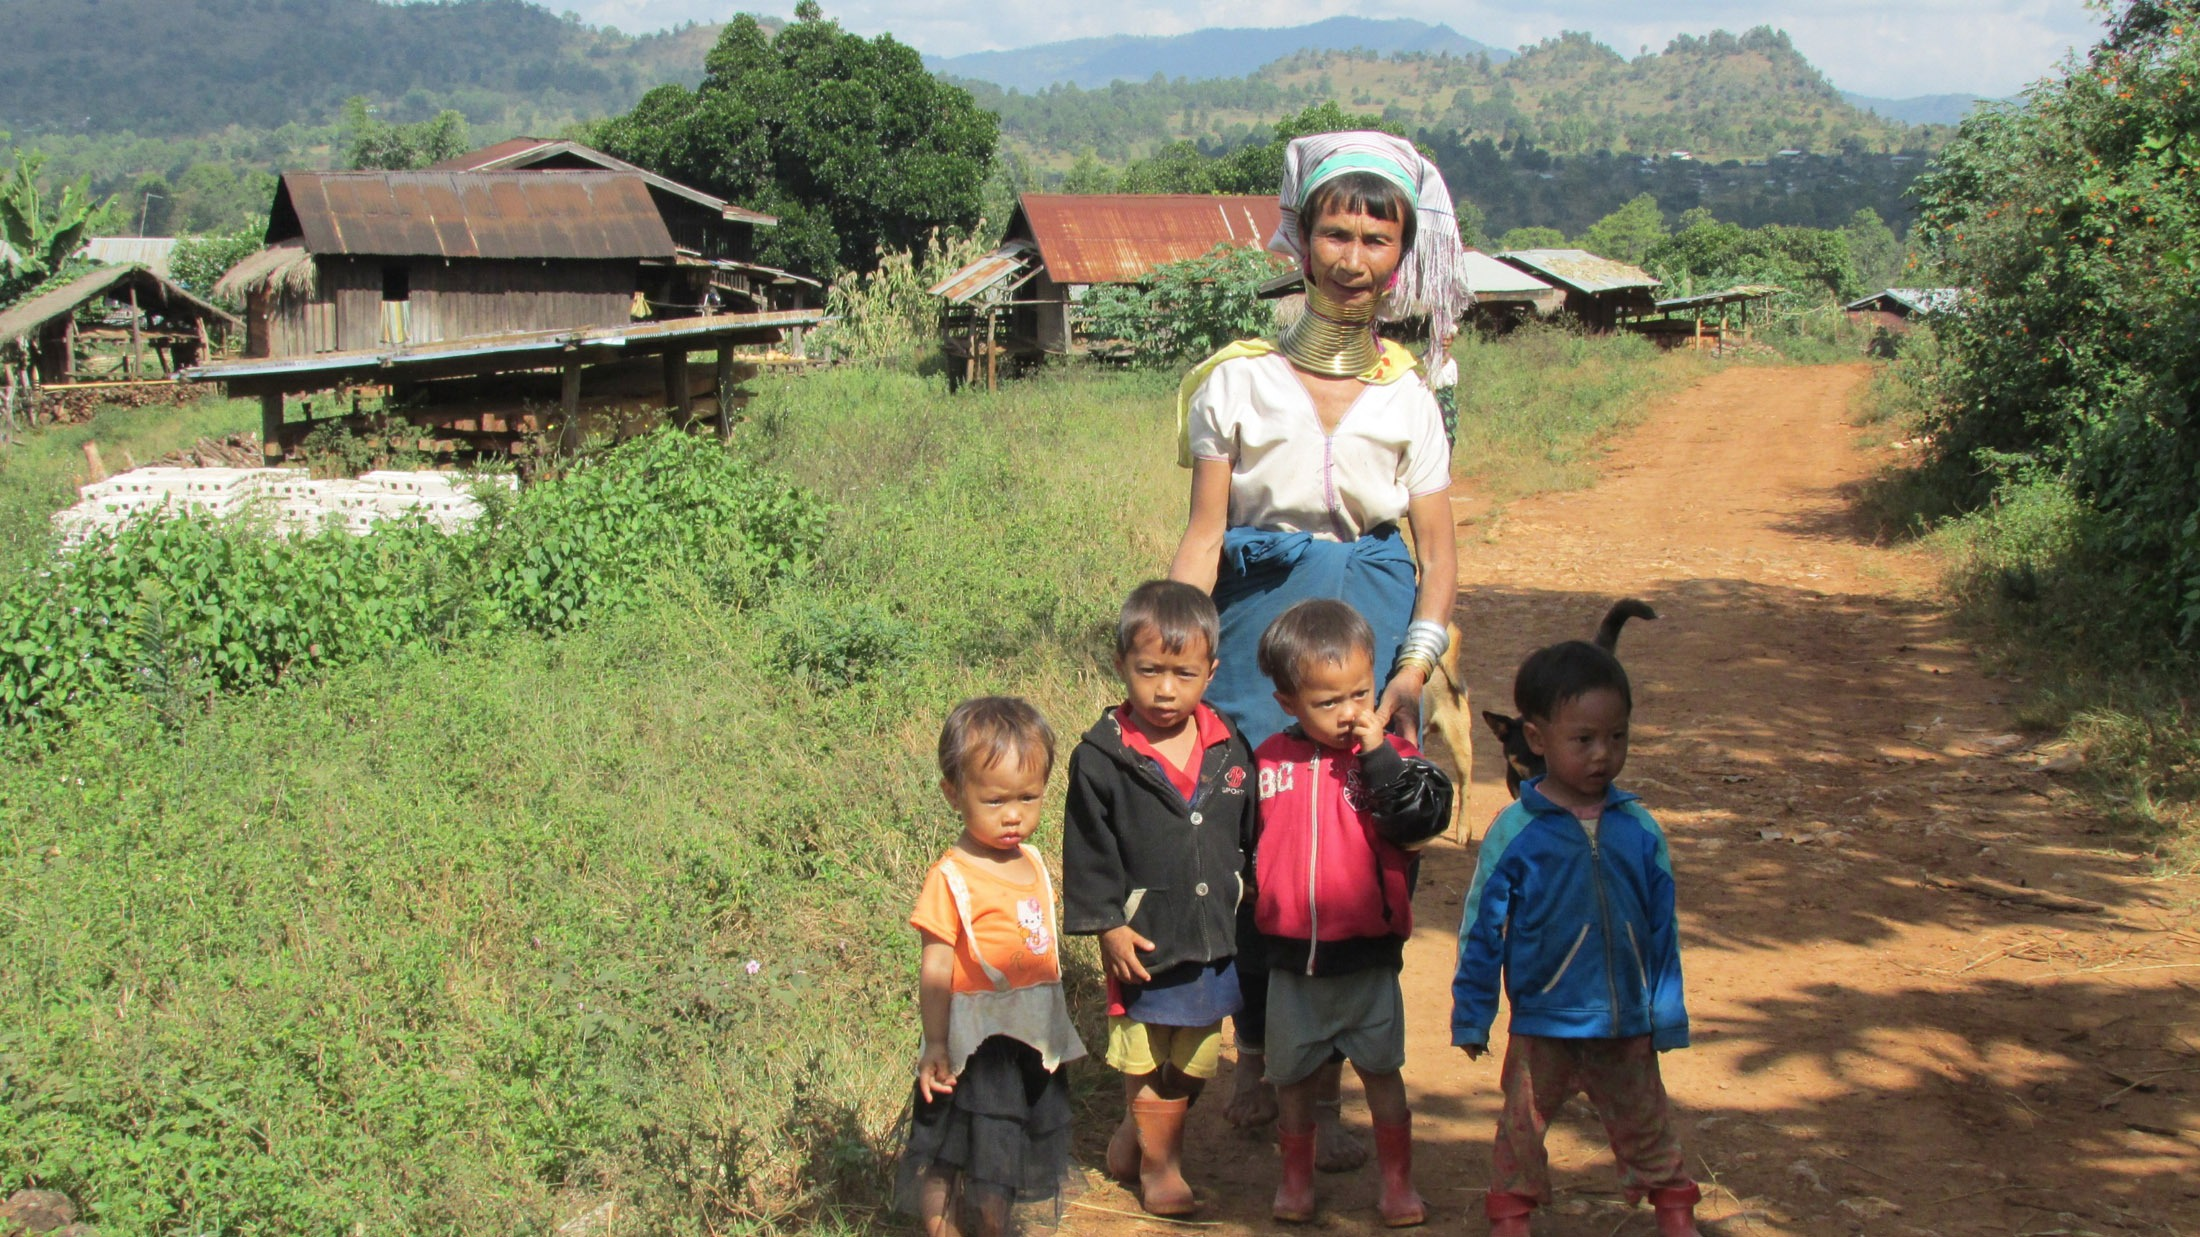 A woman and her children in Myanmar's Kayah state, where peace process negotiations have resulted in a ceasefire but landmine clearance activities remain in limbo.